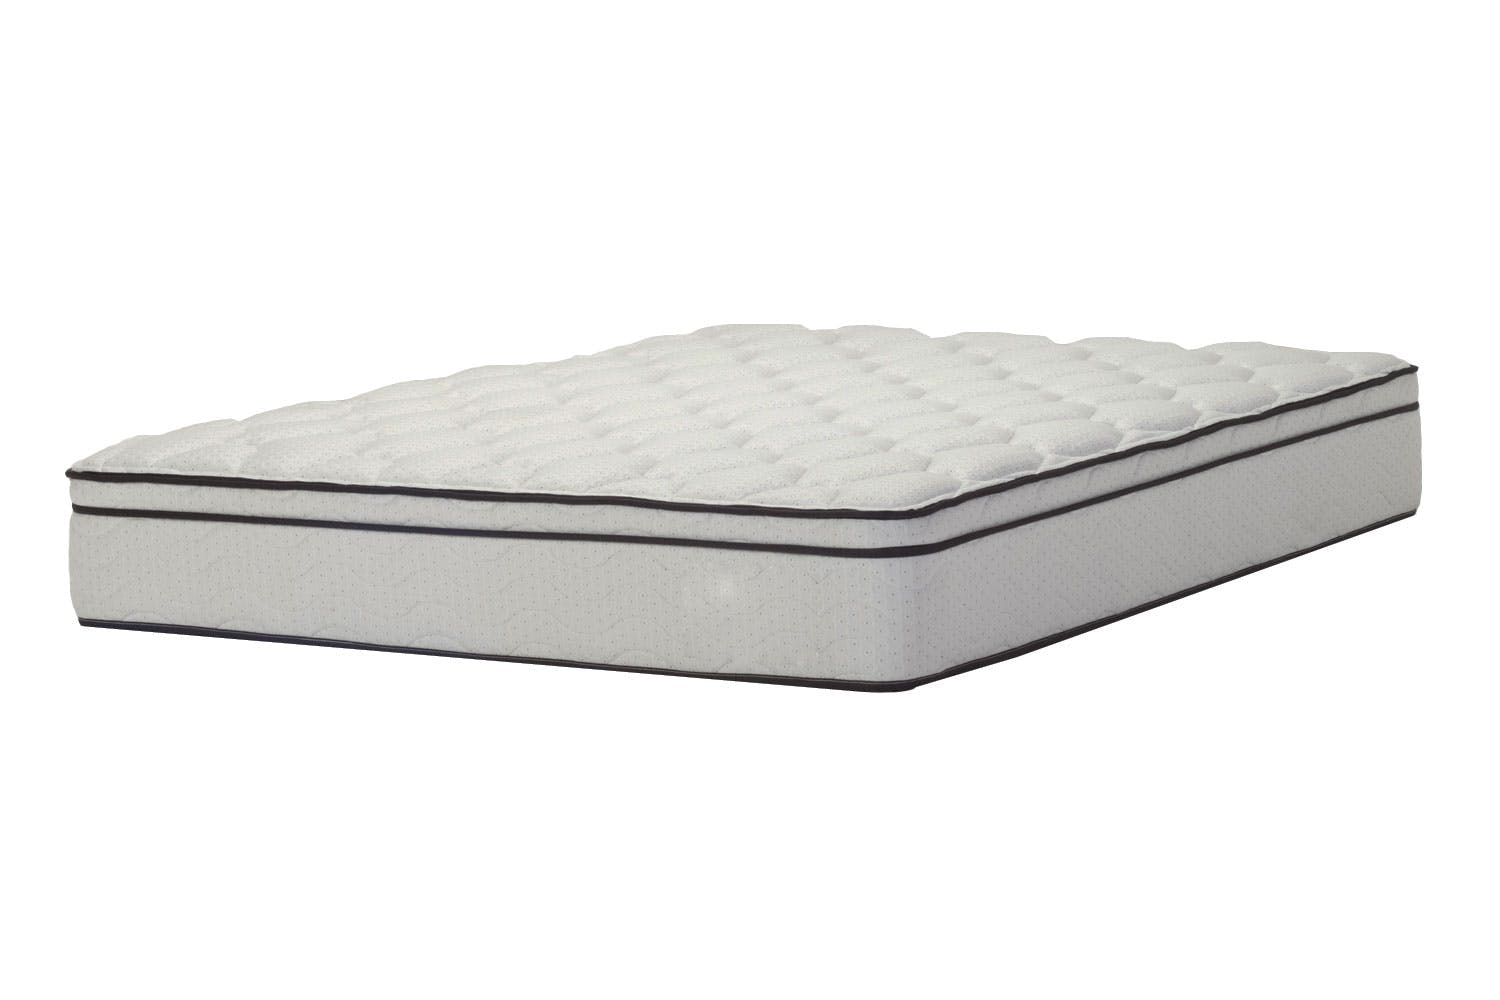 Sierra Support Queen Mattress by A.H. Beard